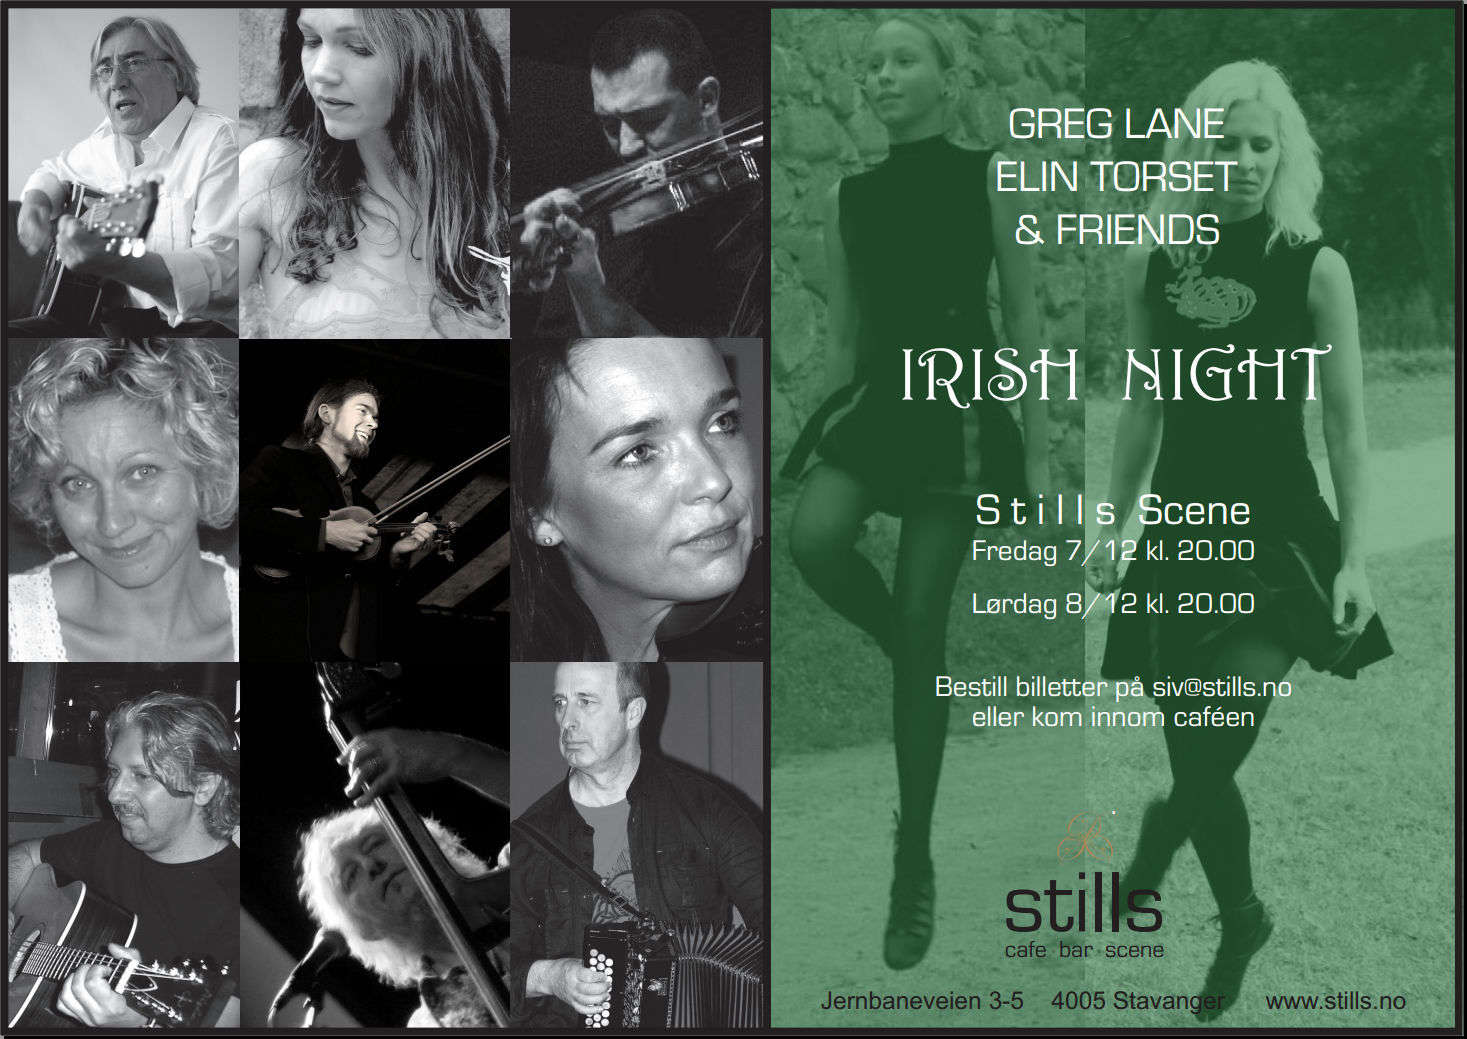 An Irish Night in Stavanger poster